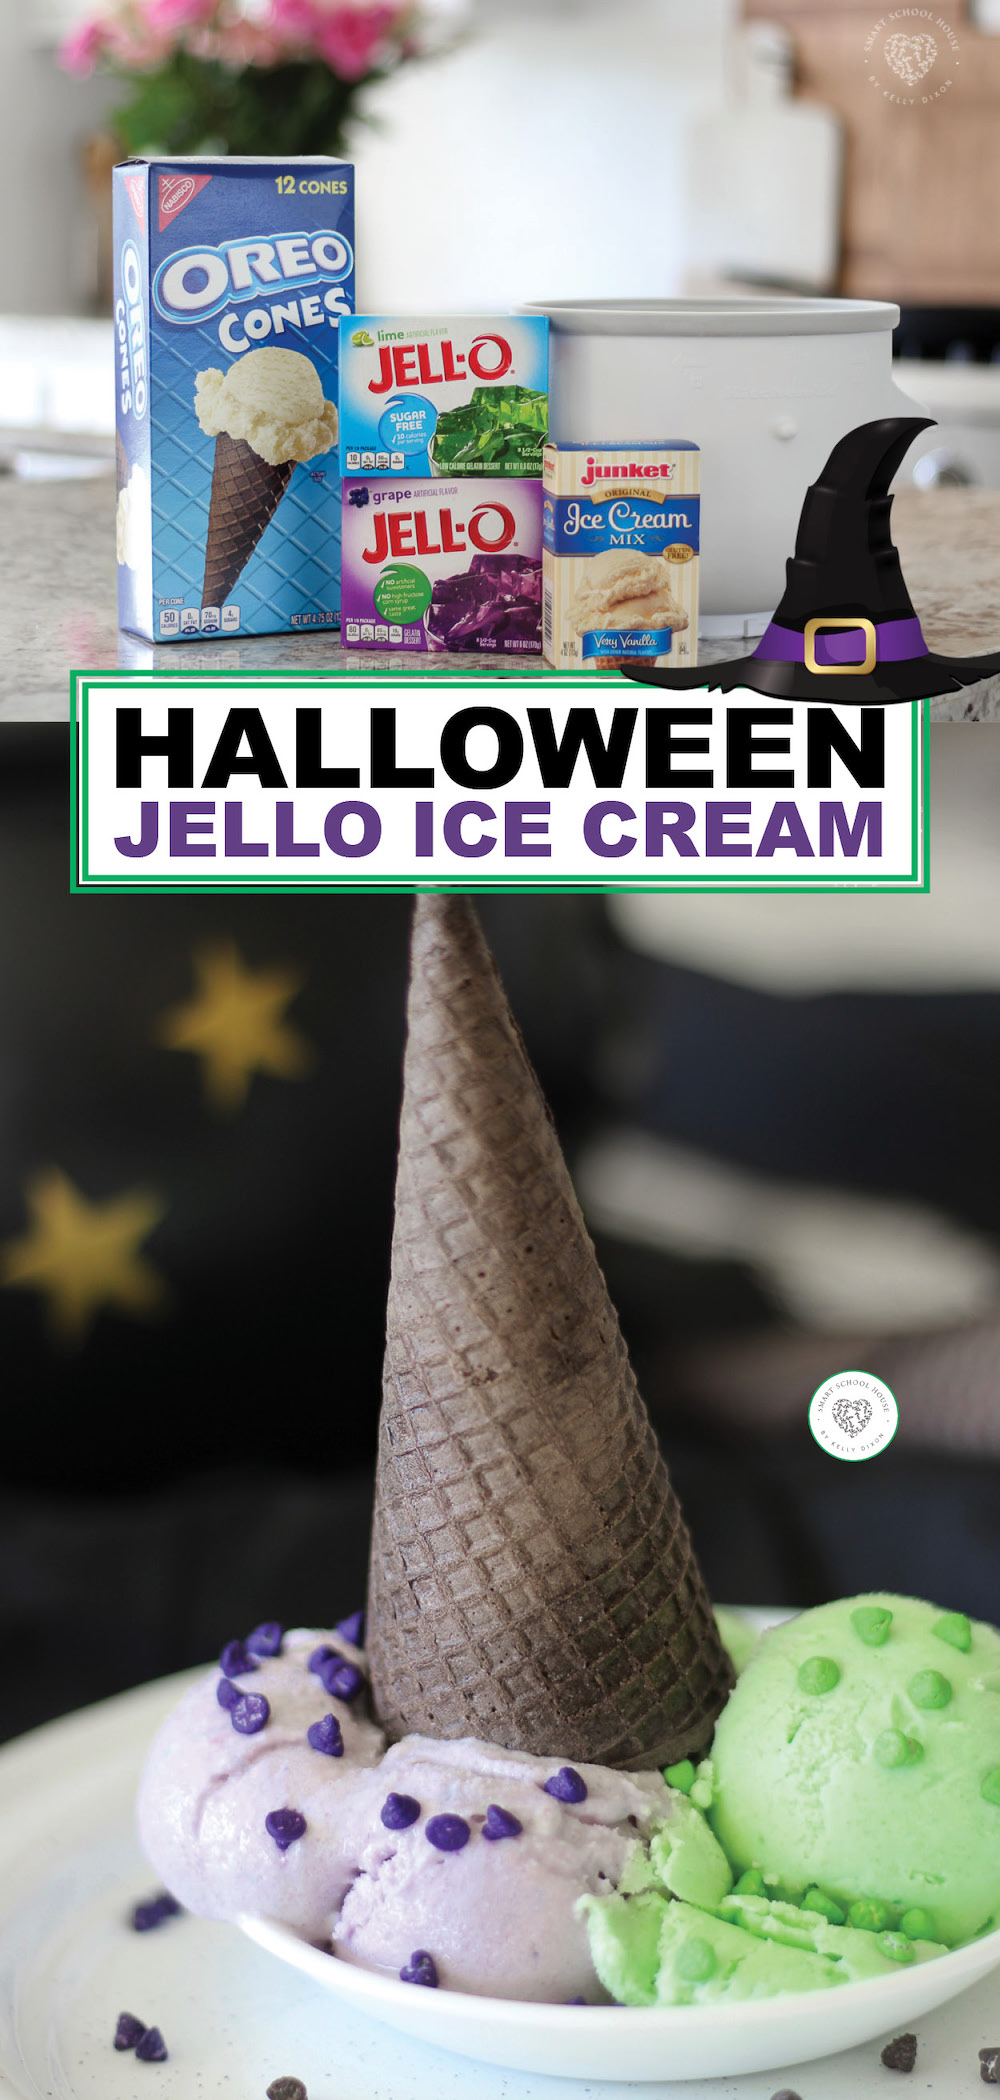 Halloween Jello Ice Cream